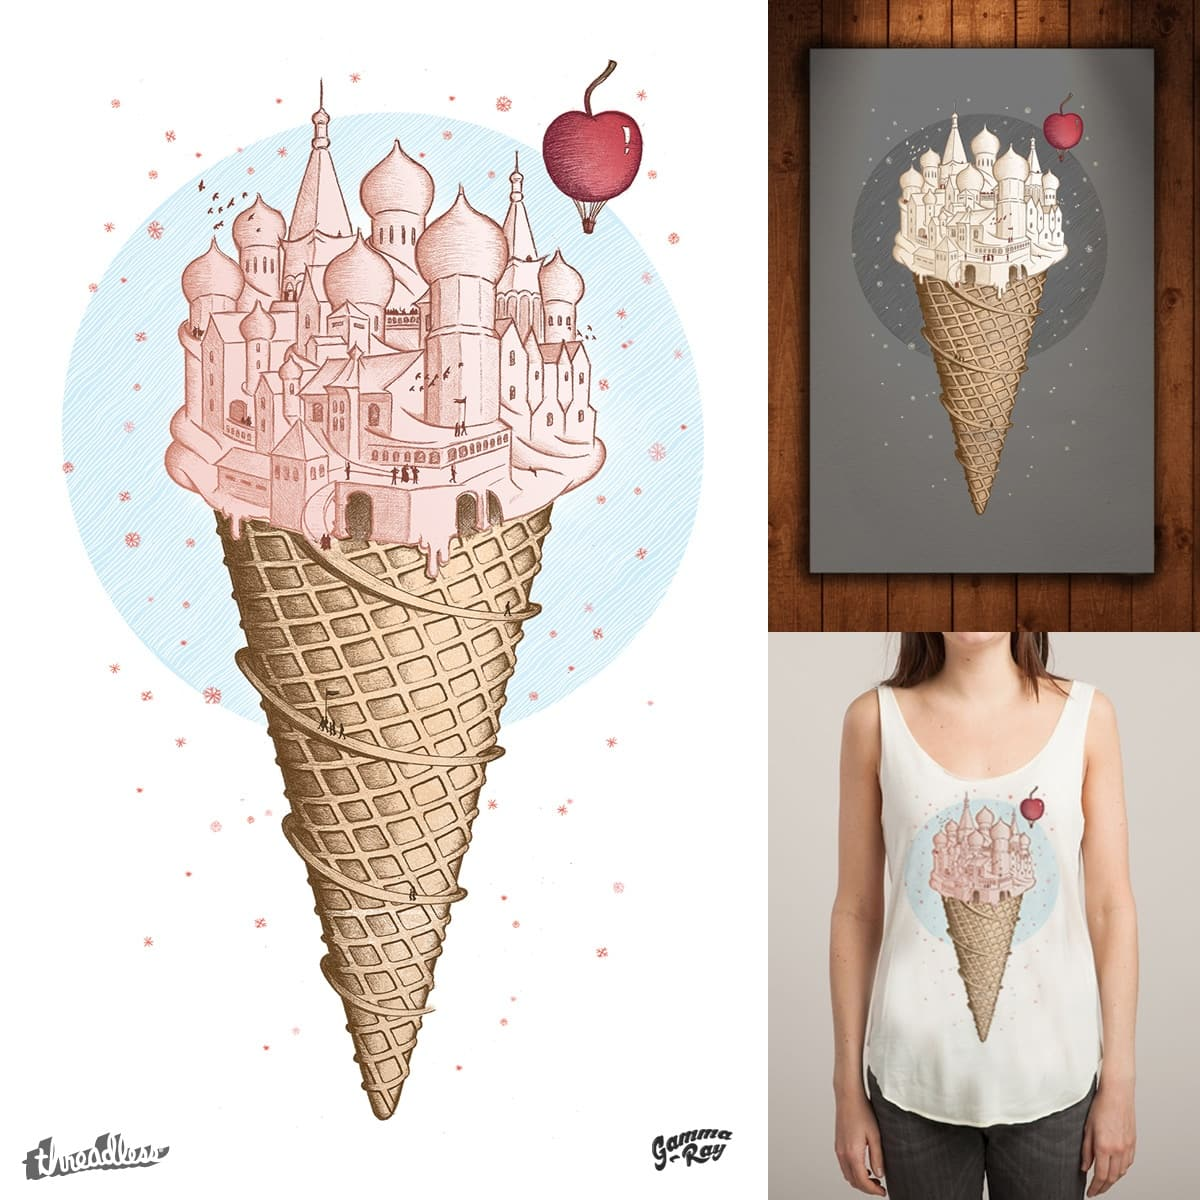 Coney Island by Gamma-Ray on Threadless